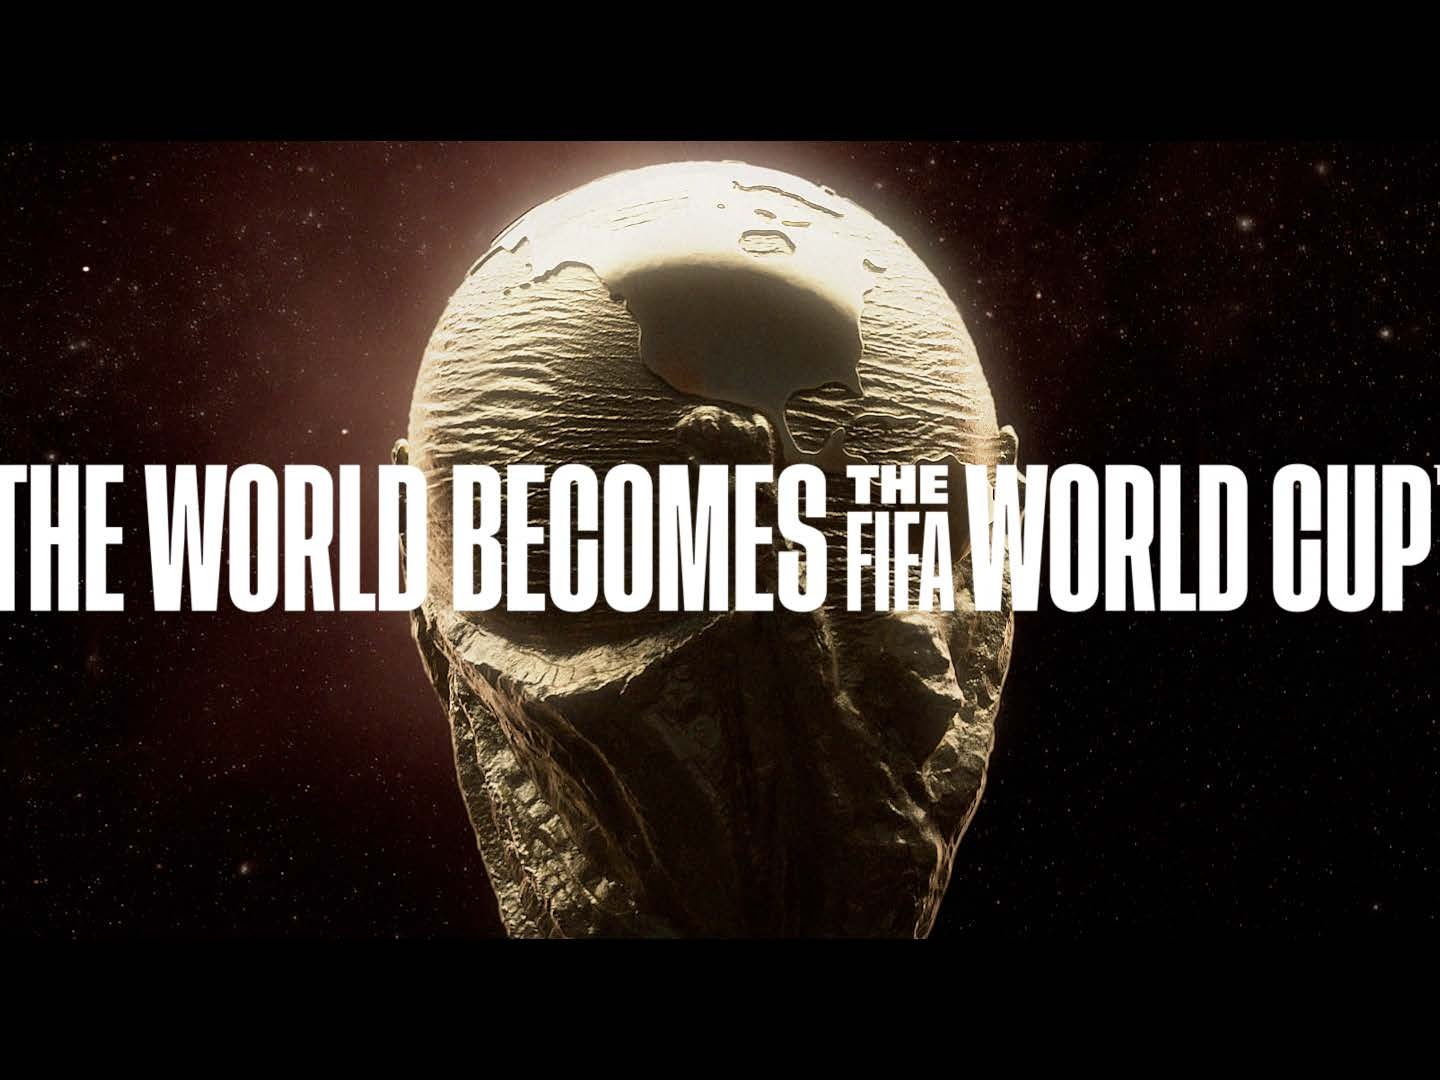 World Becomes World Cup - Anthem Thumbnail